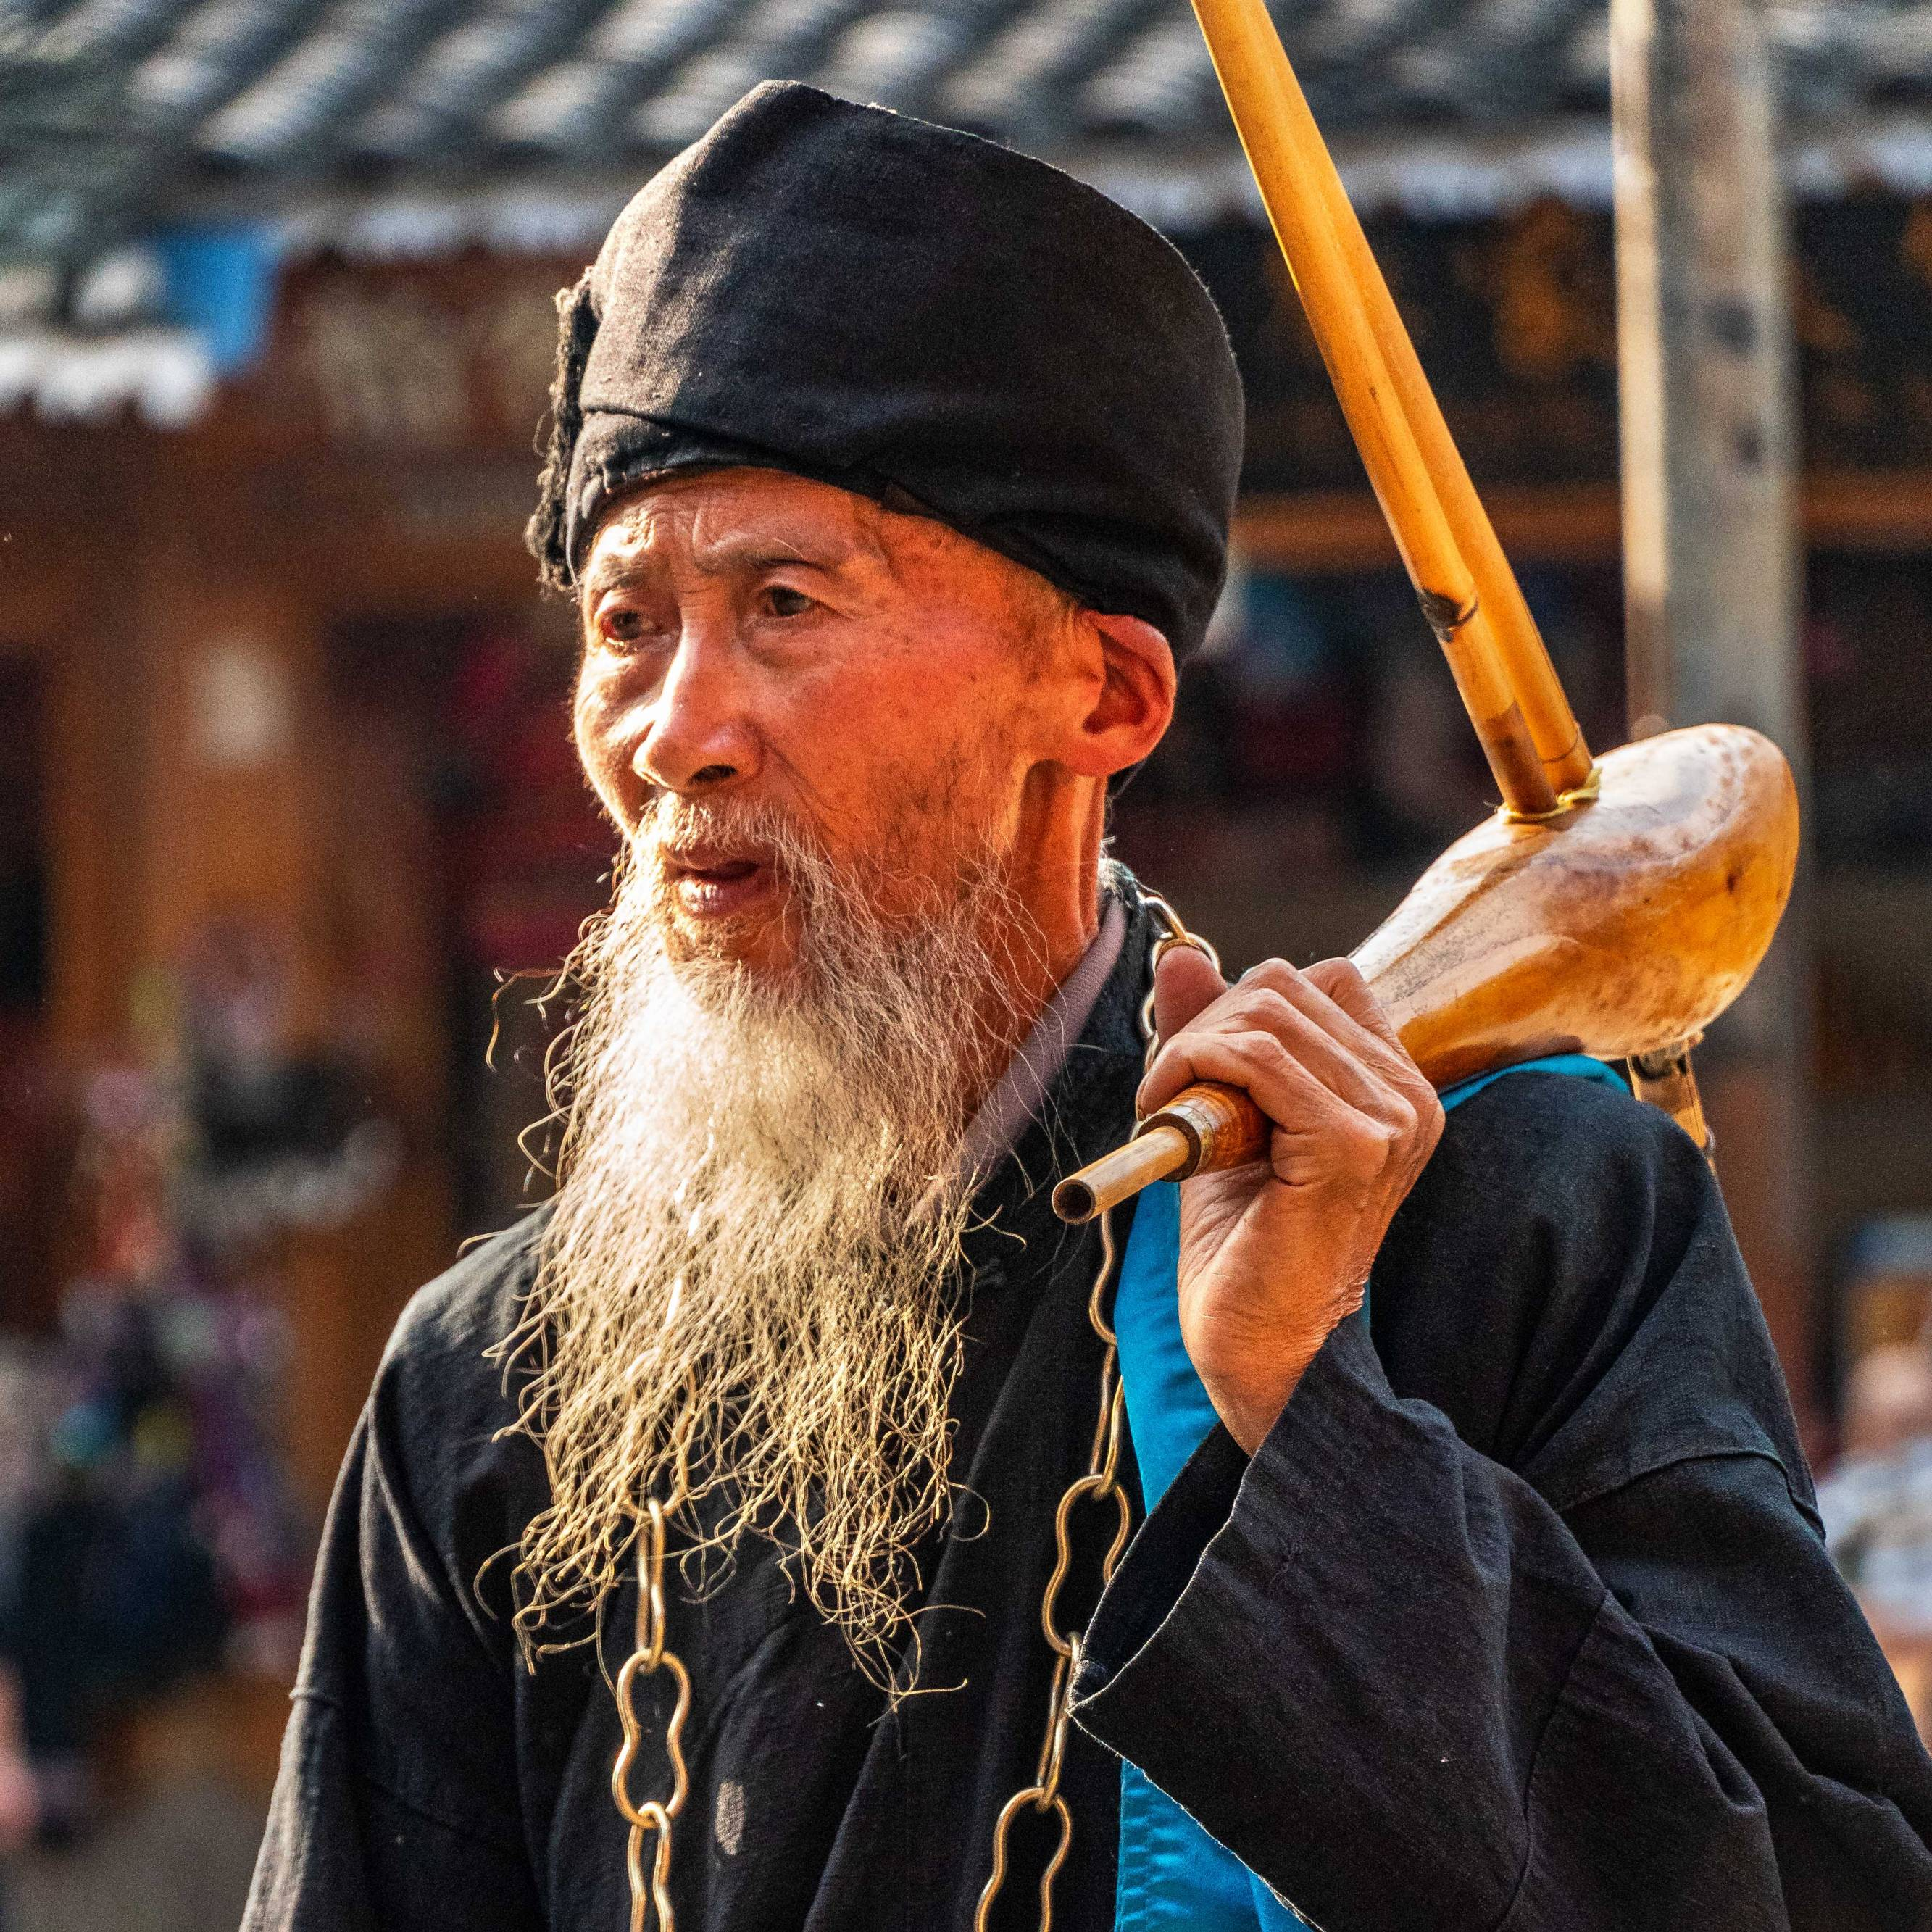 Man wearing traditional clothes and instrument, Dong Village, Province Yunnan